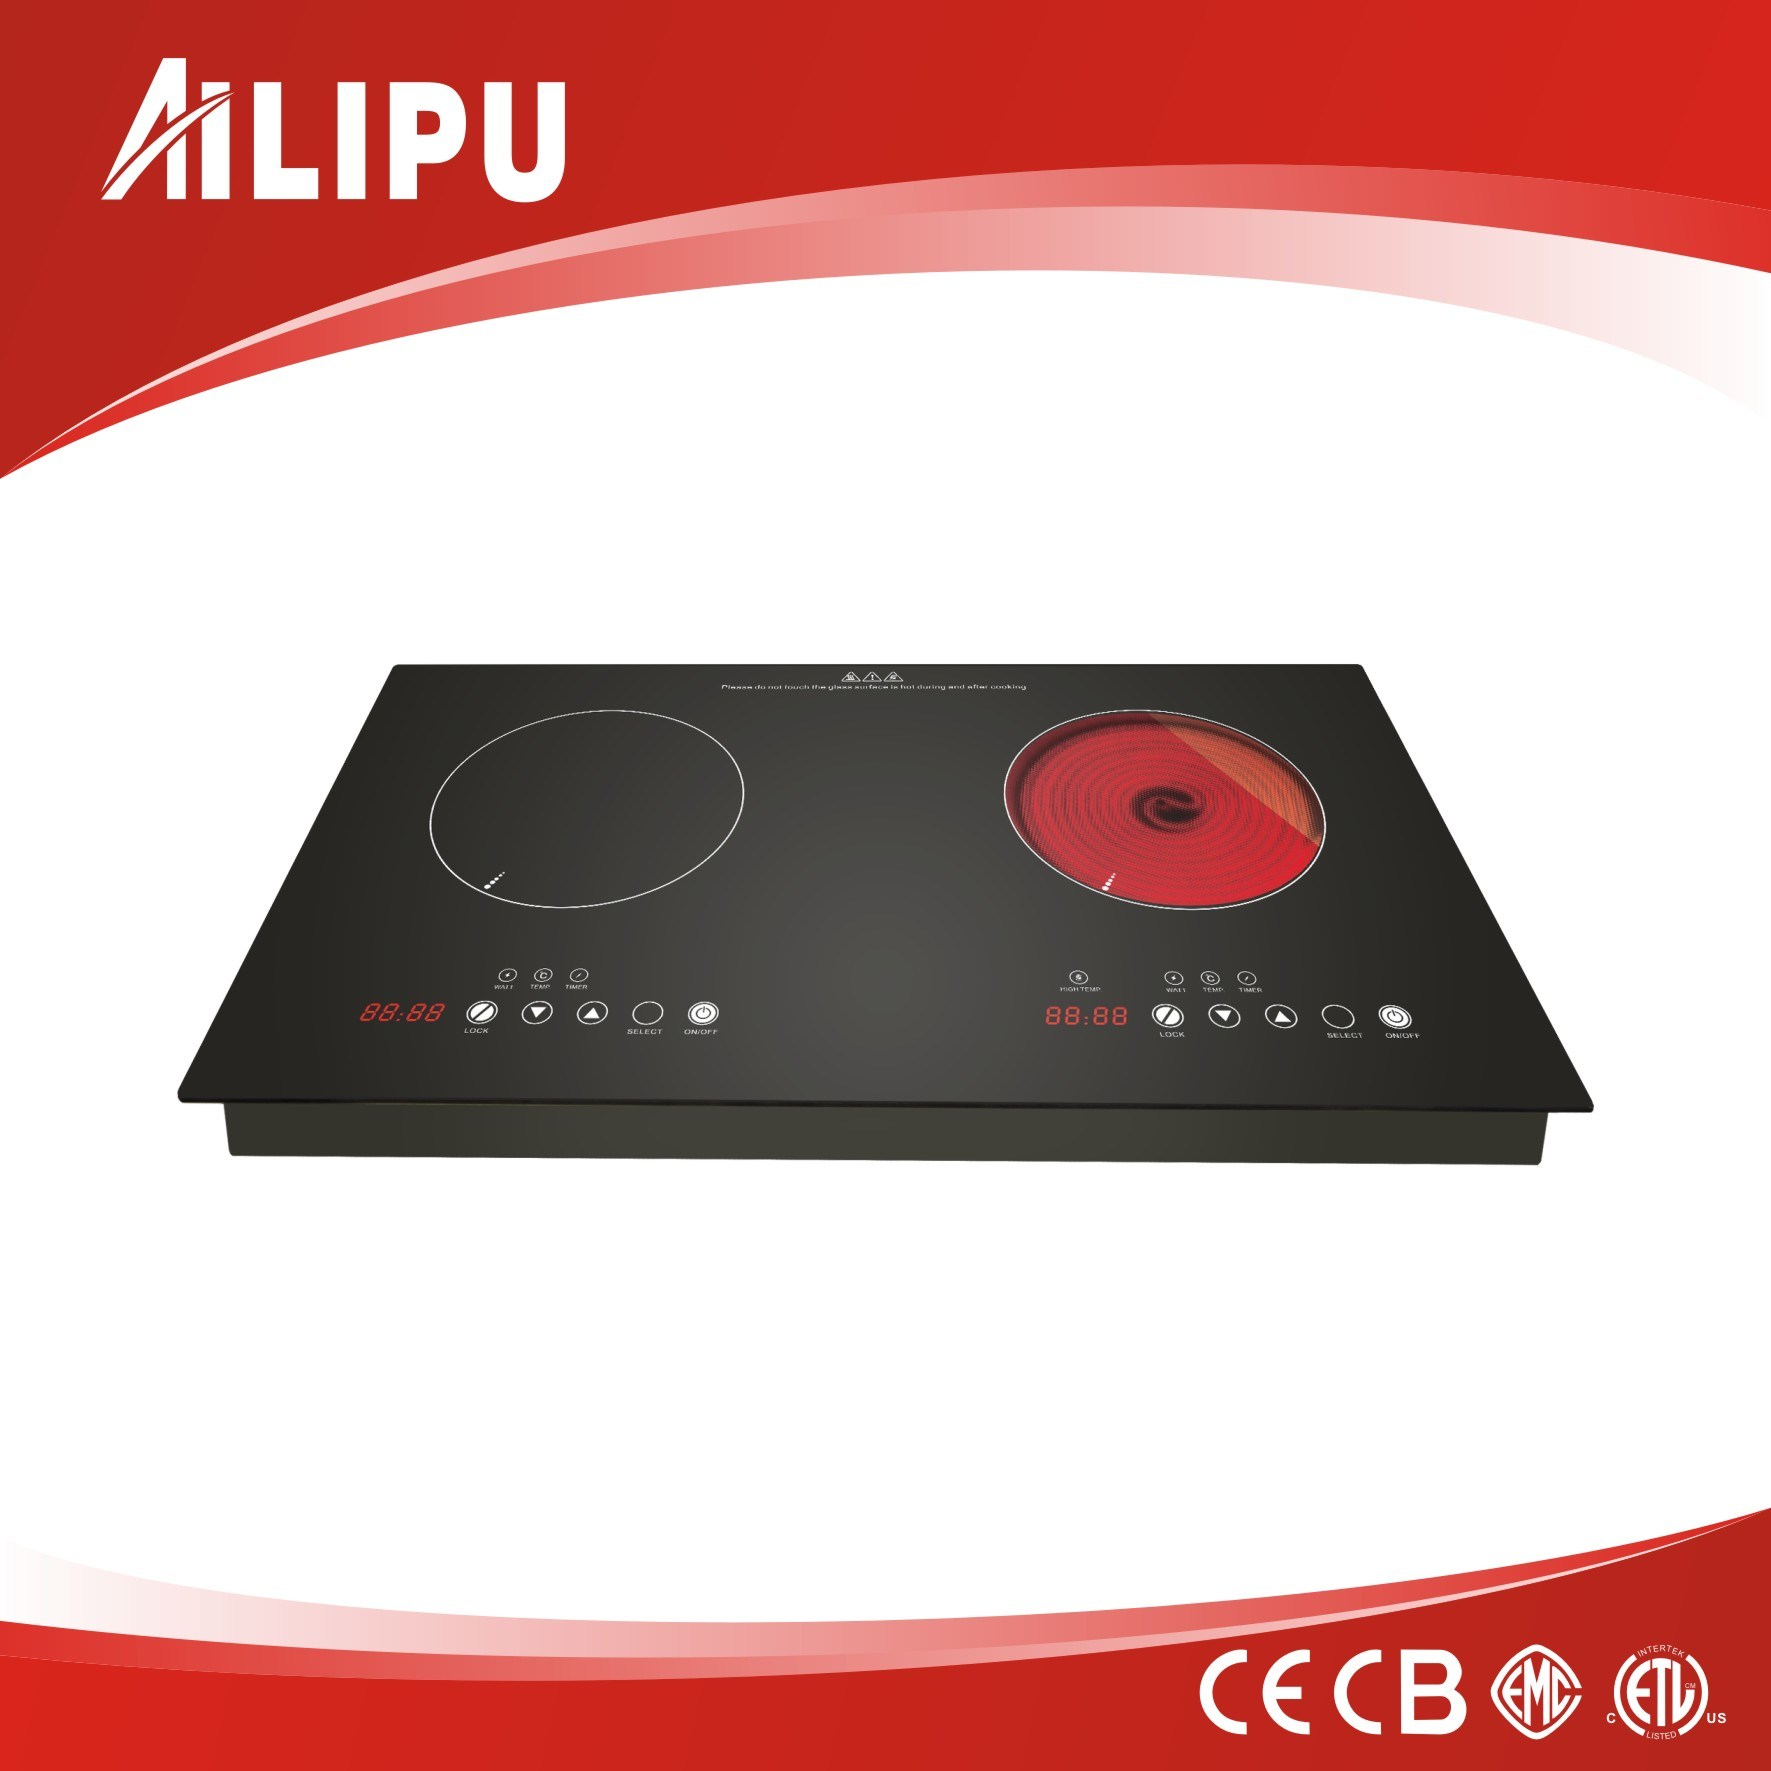 OEM Two Burner Electric Cooktop with Multi-Function